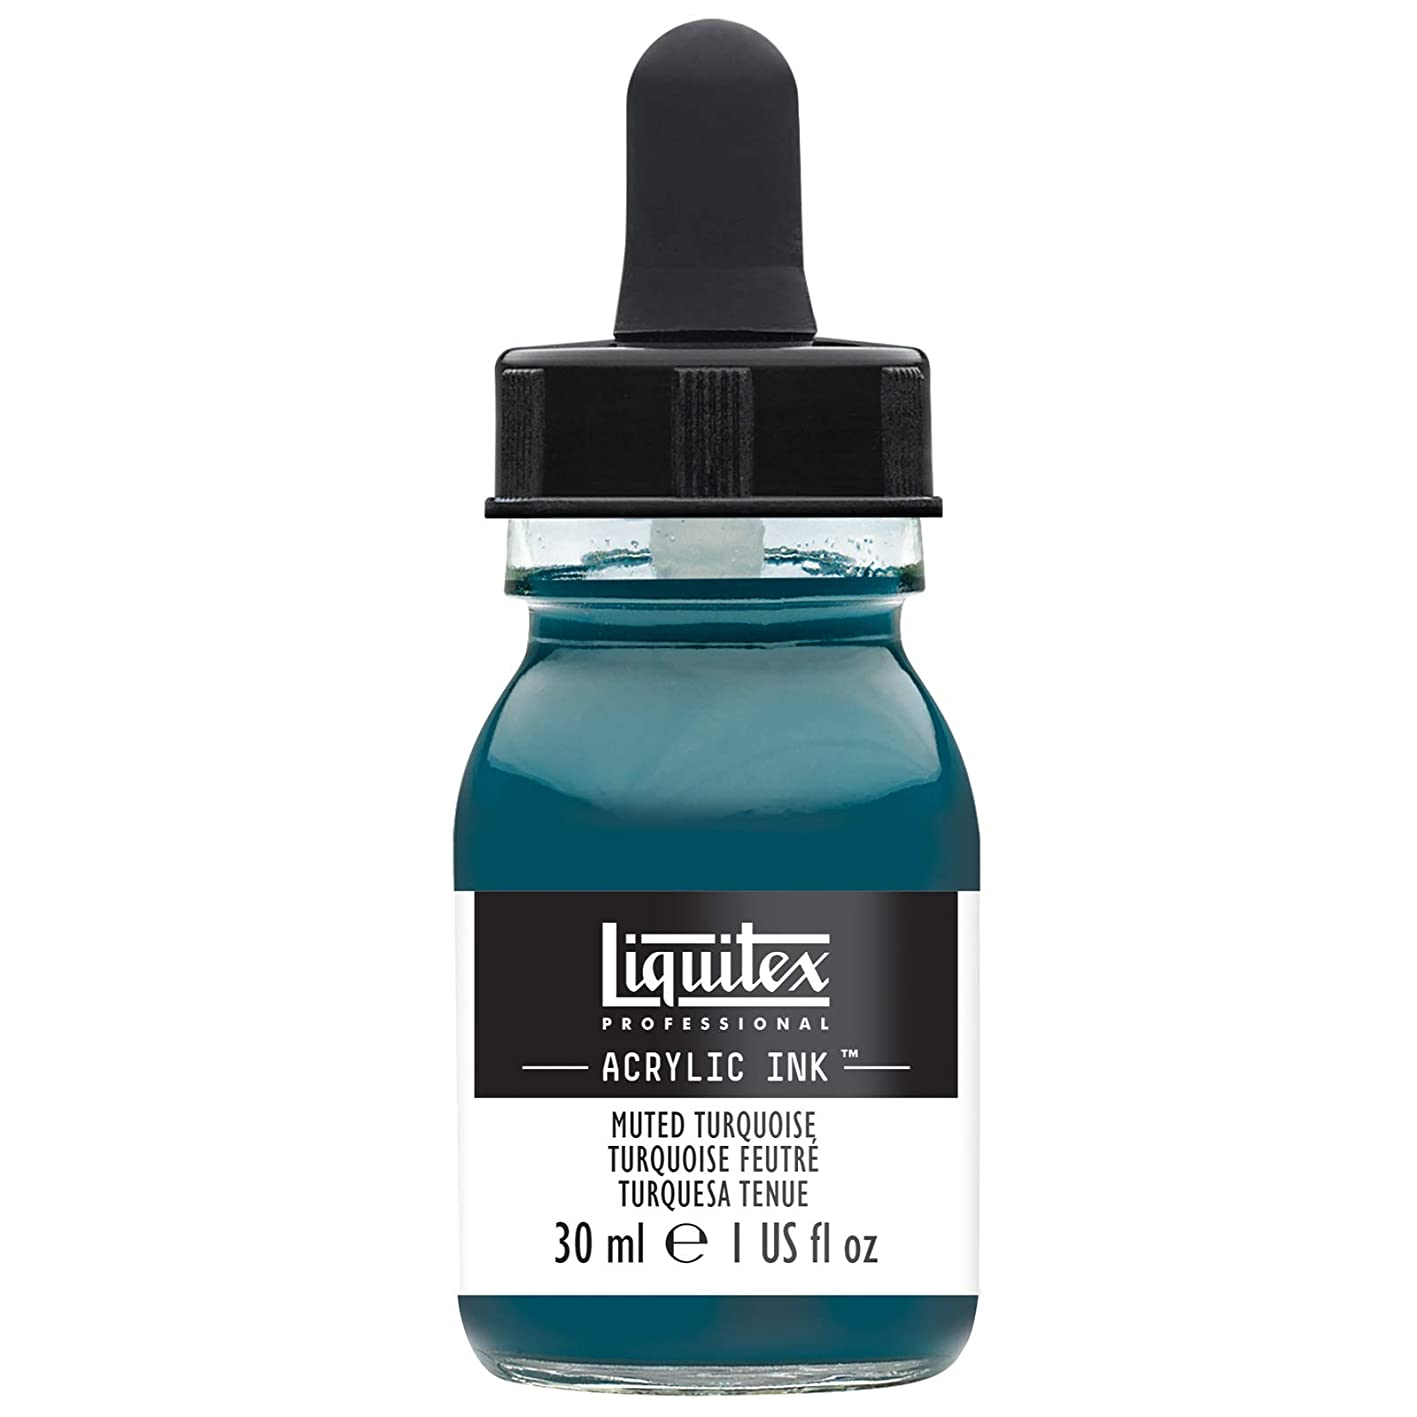 Liquitex Special Release Collection Professional Acrylic Ink! 1-oz Jar - Muted Turquoise, 1 oz, cfkzkygdgju705